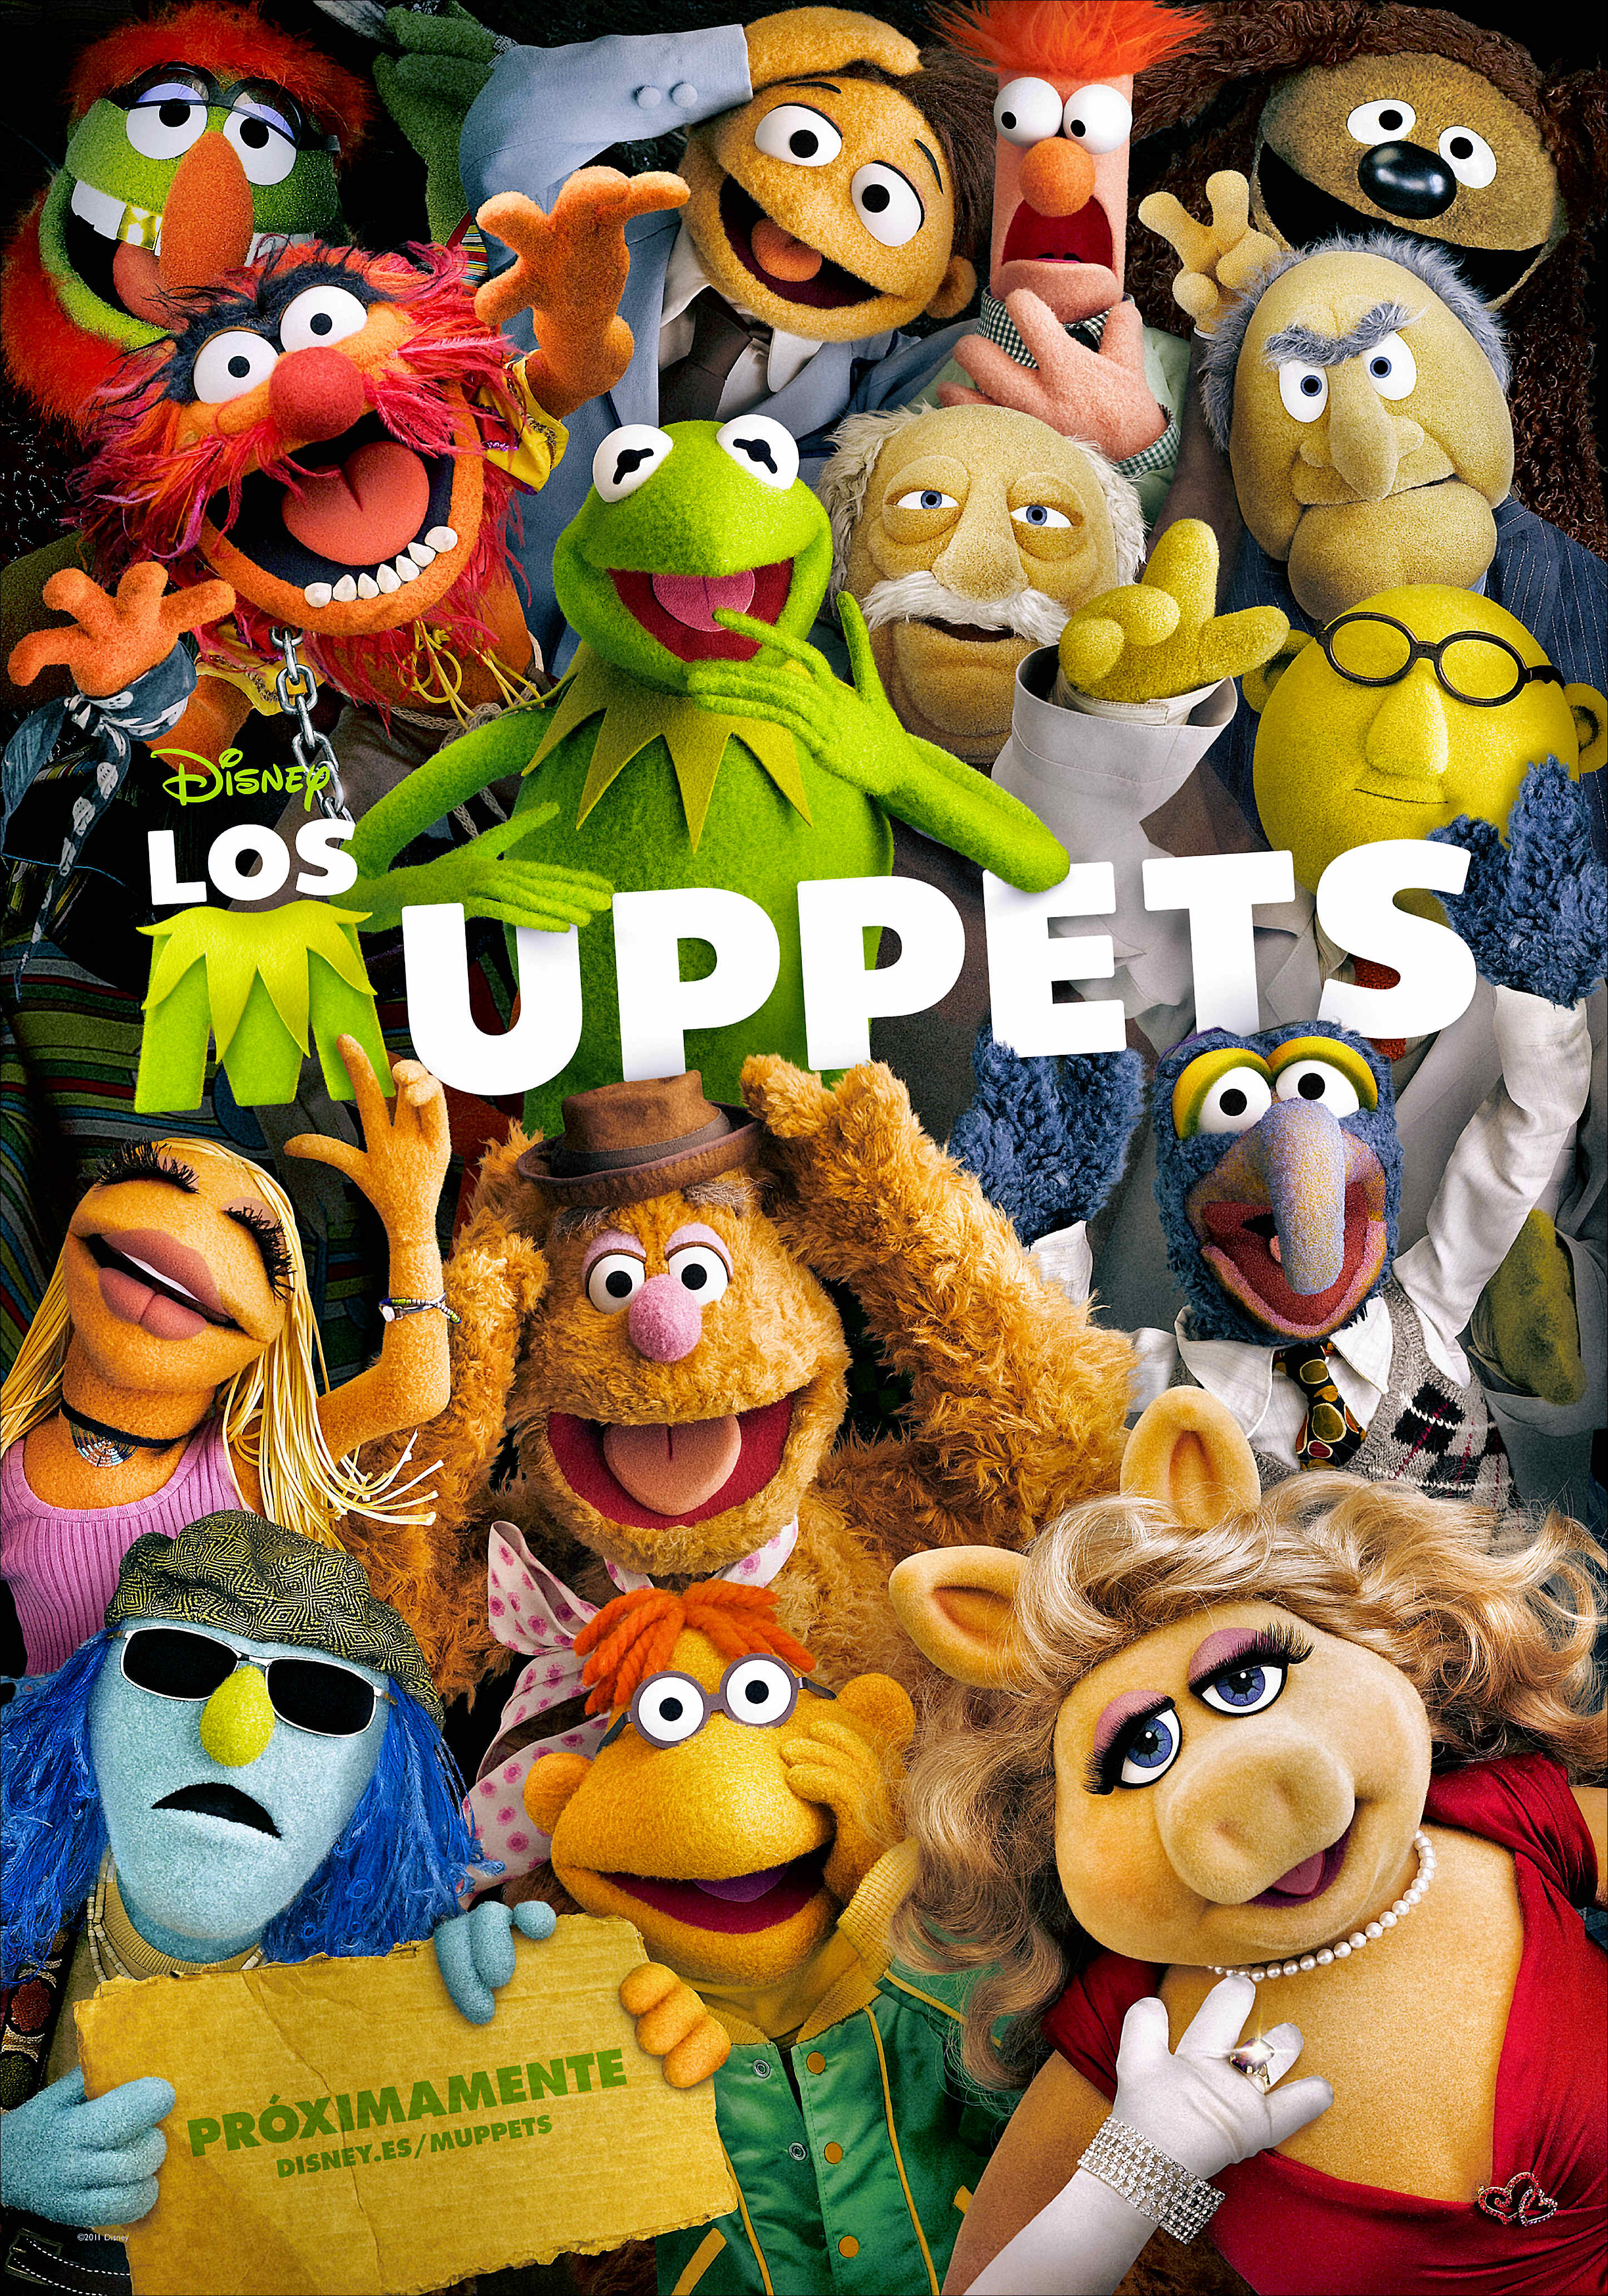 The Muppets (film)/Gallery